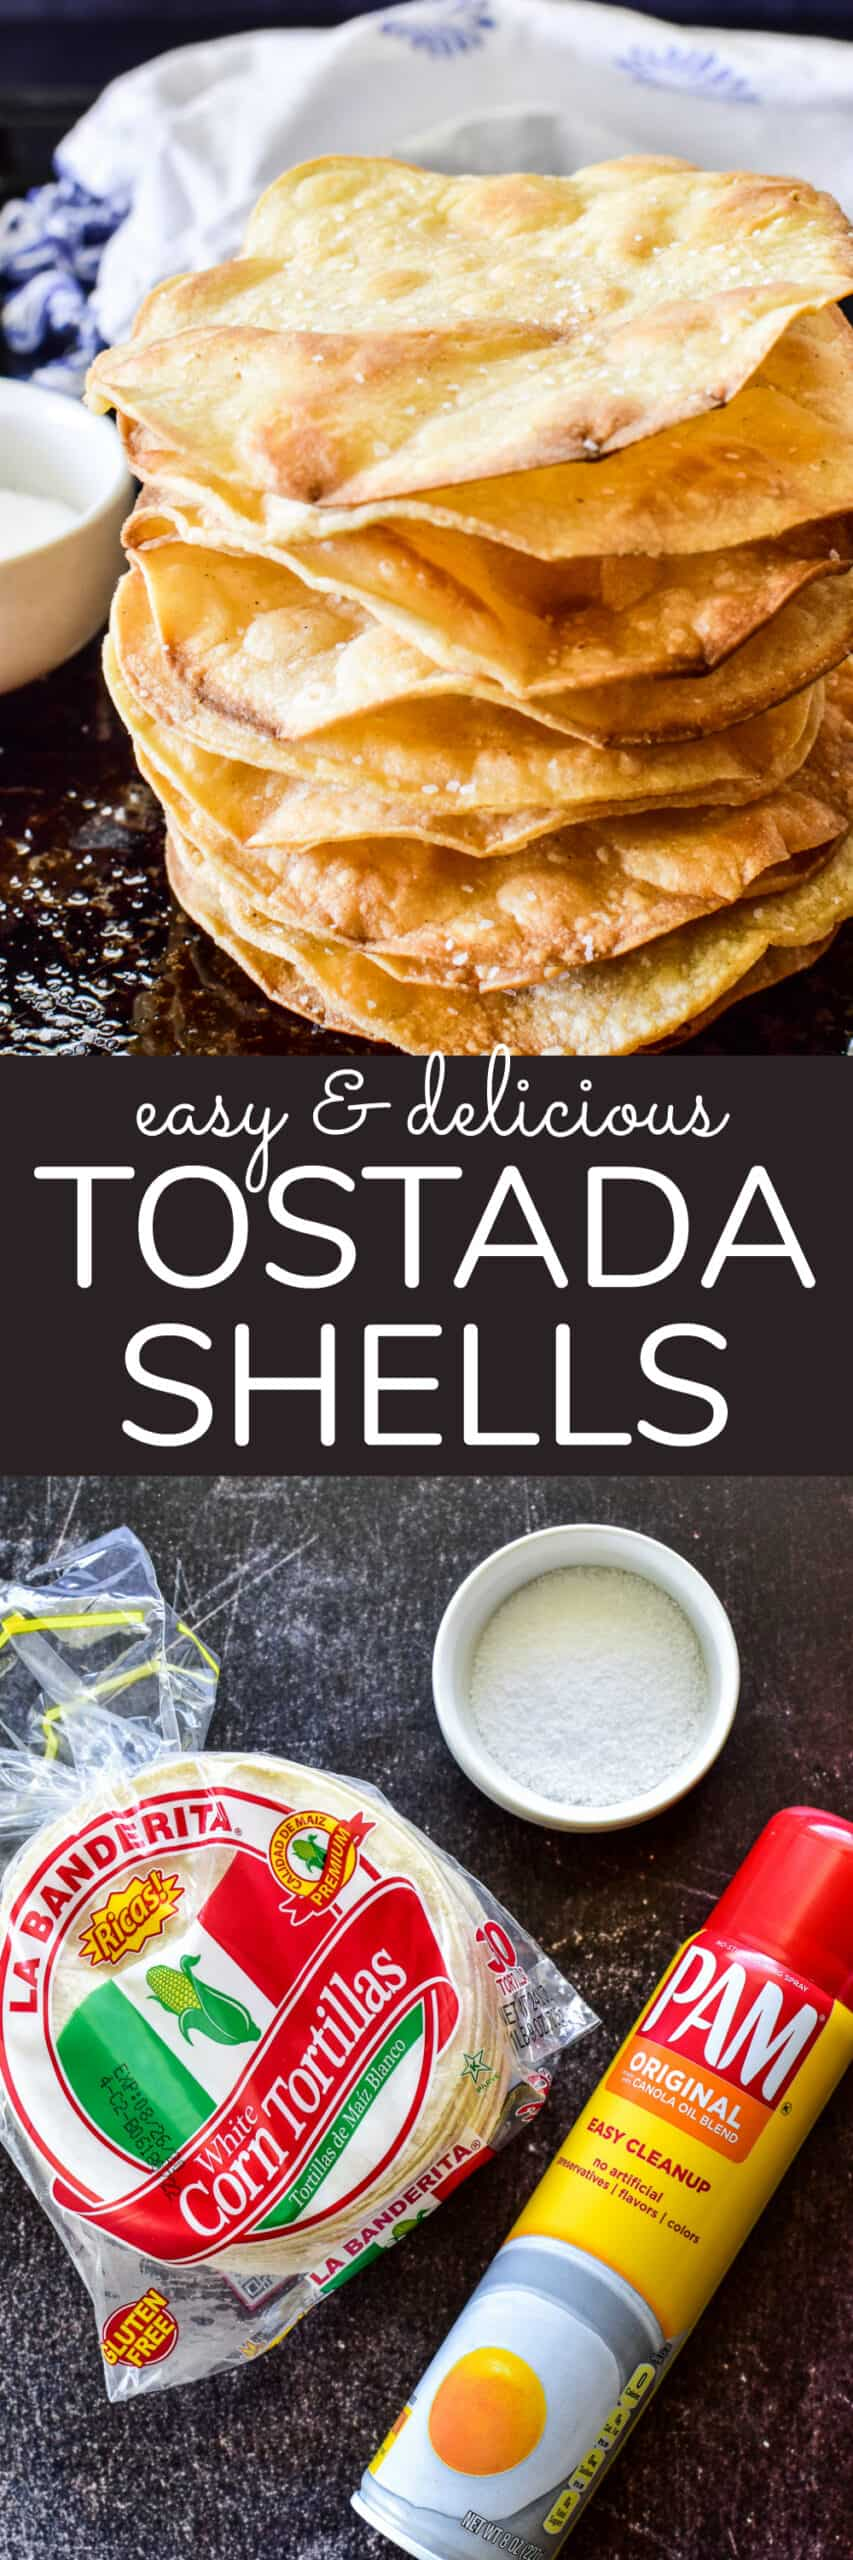 Collage image of Tostada Shells